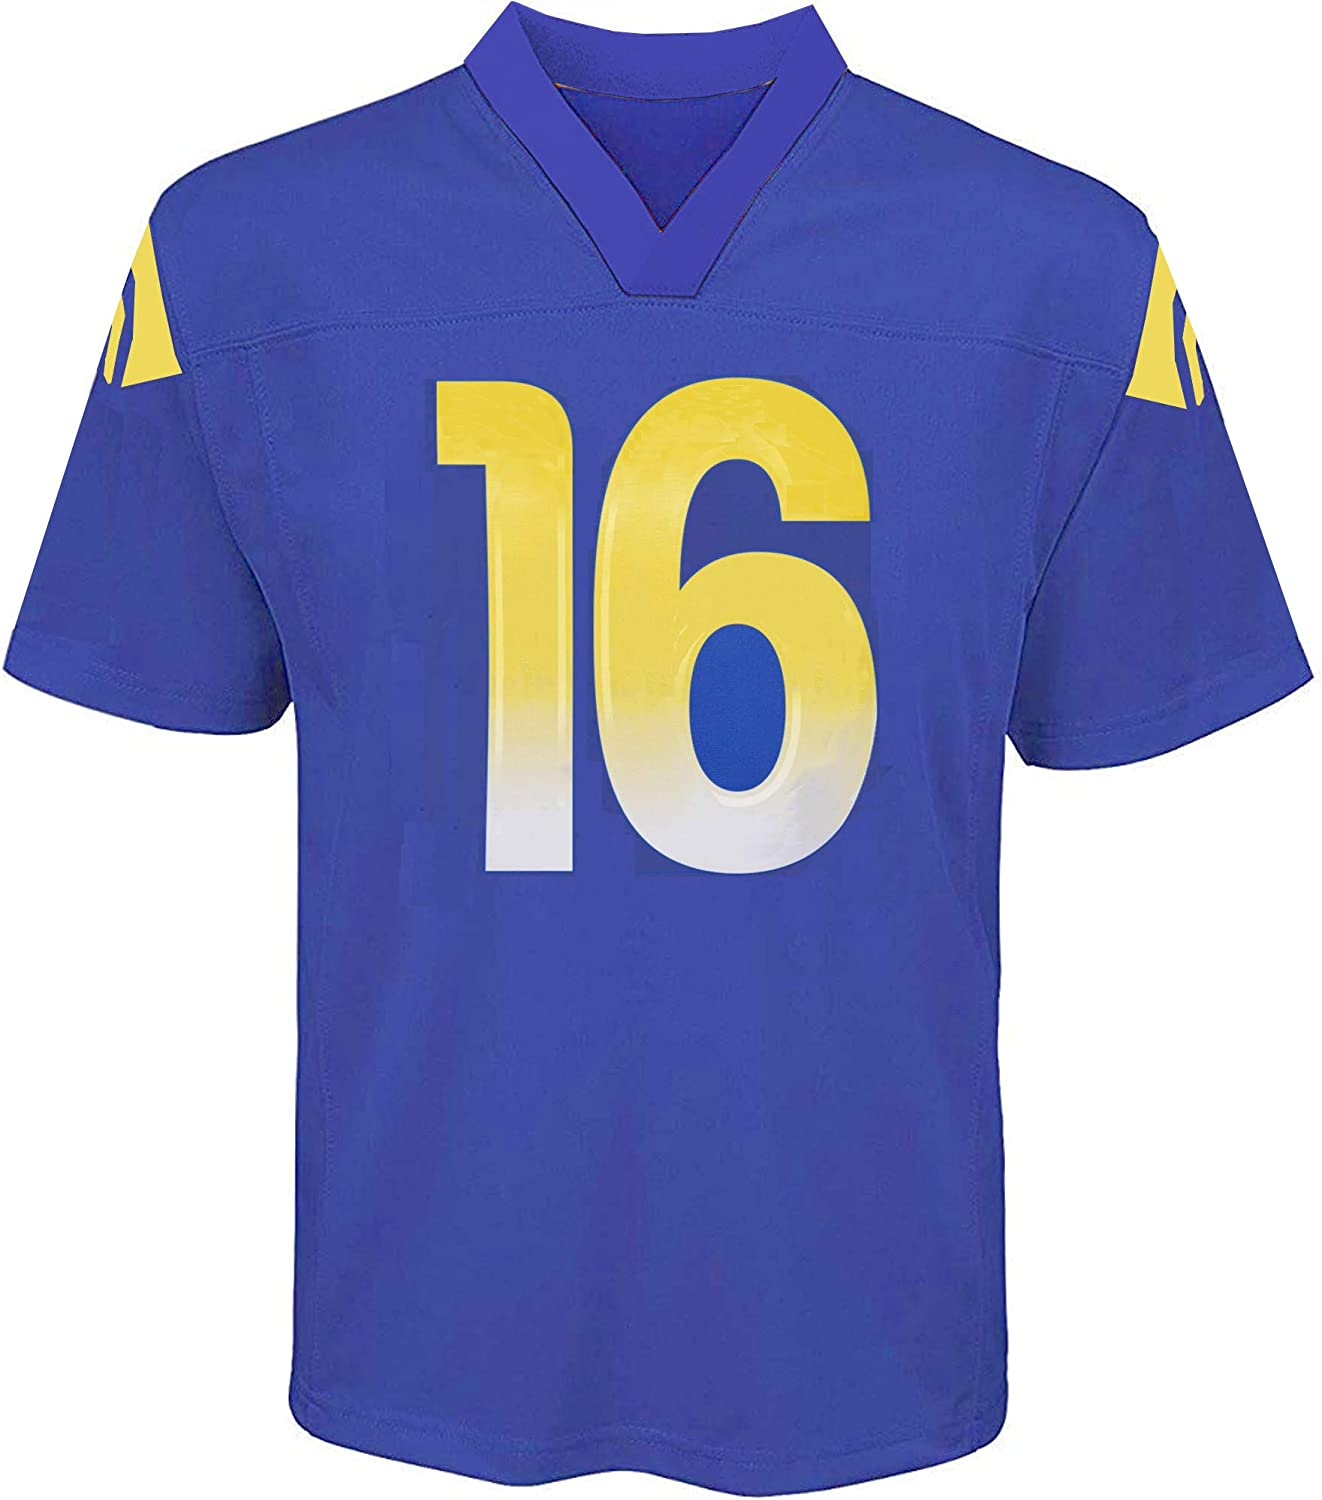 Outerstuff Jared Goff Los Angeles Rams NFL Boys Youth 8-20 Royal Blue Home Mid-Tier Jersey